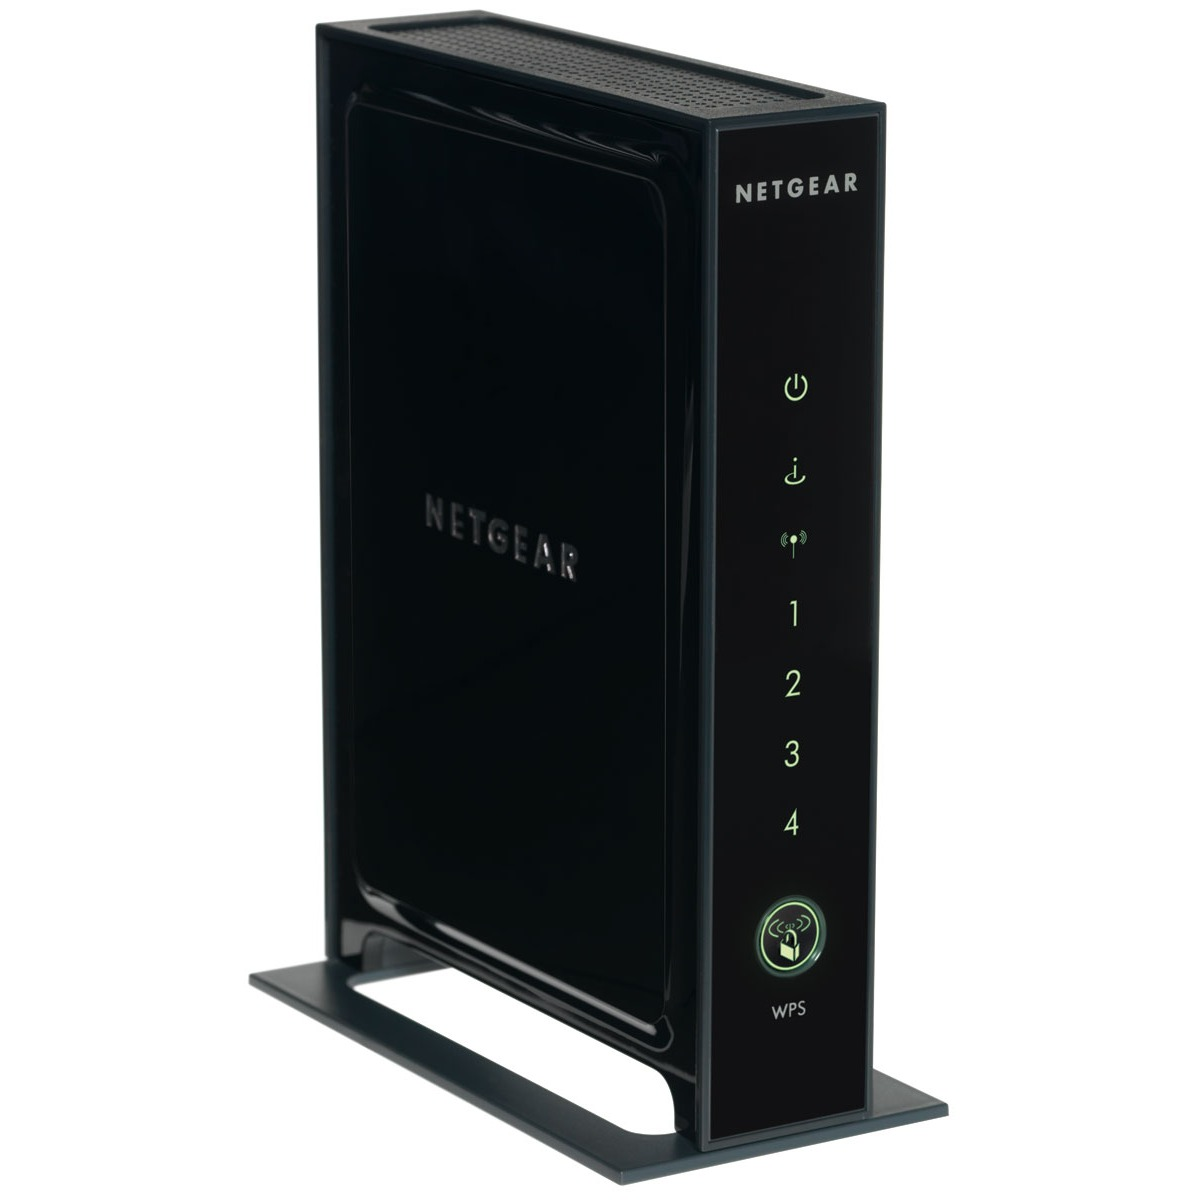 Modem & routeur Netgear WNR3500Lv2 Routeur Firewall Wireless-N 300Mbit/s Edition Gigabit Open Source